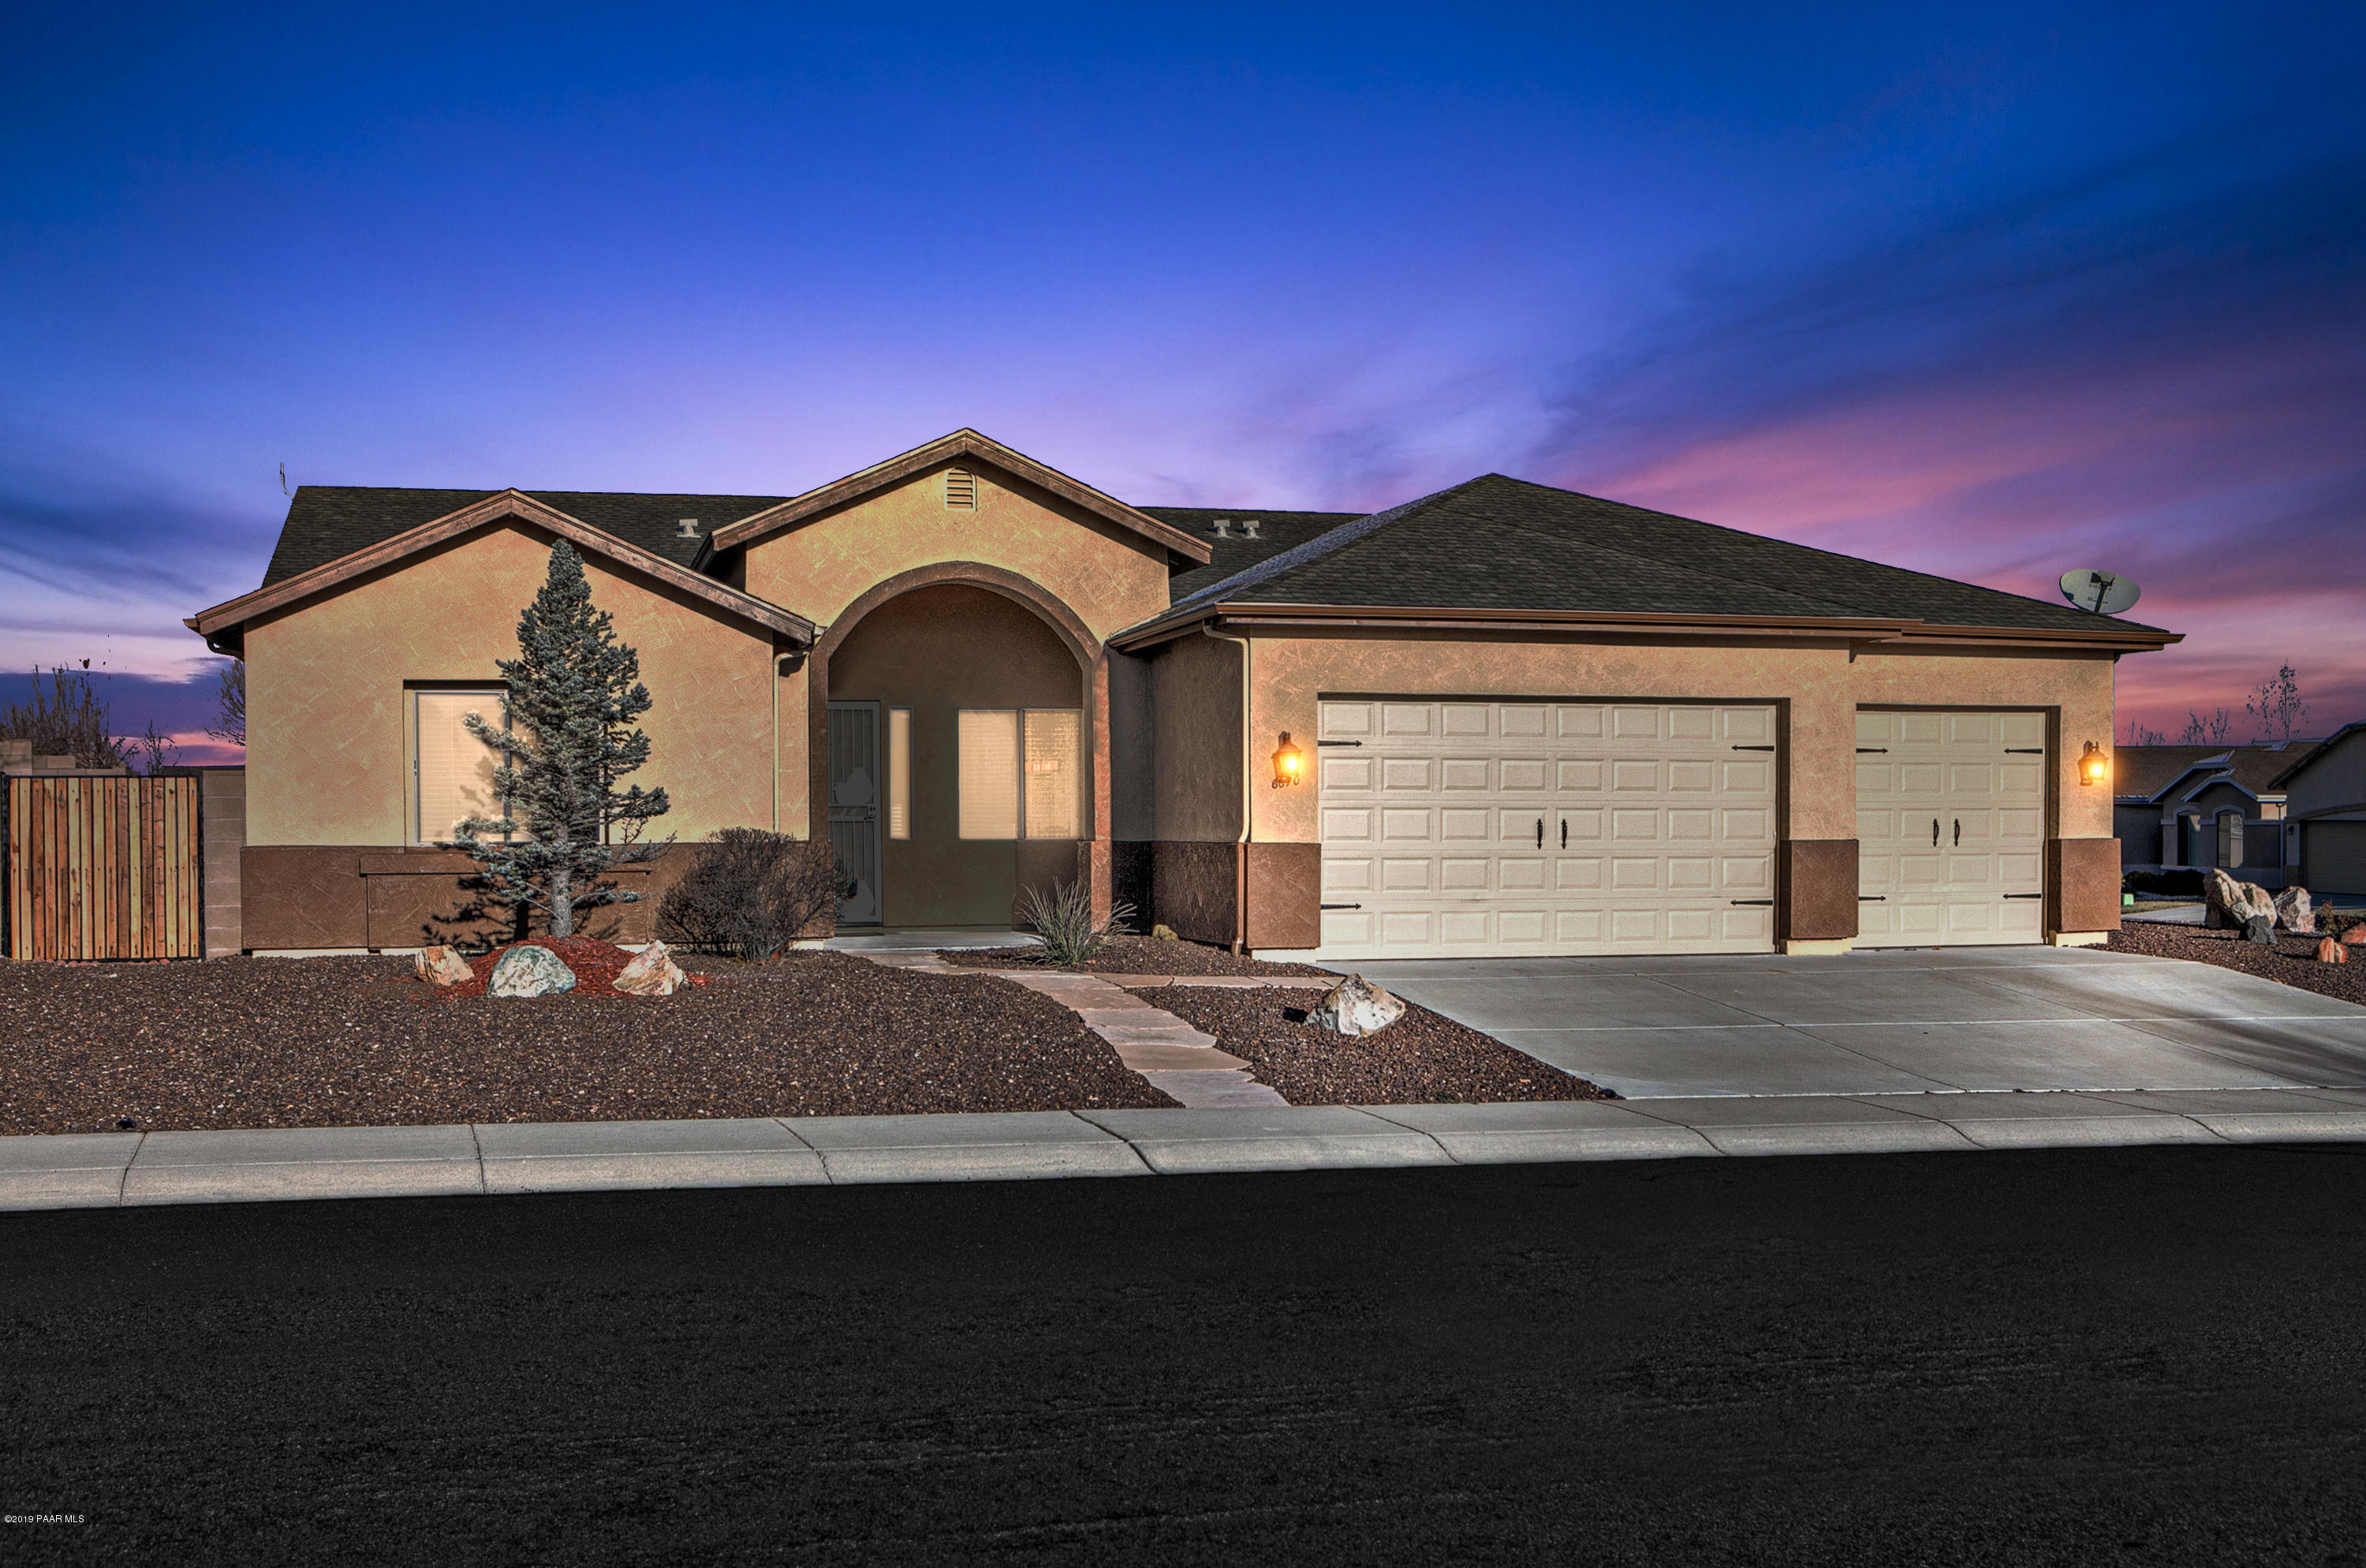 Photo of 6670 Brighton, Prescott Valley, AZ 86314